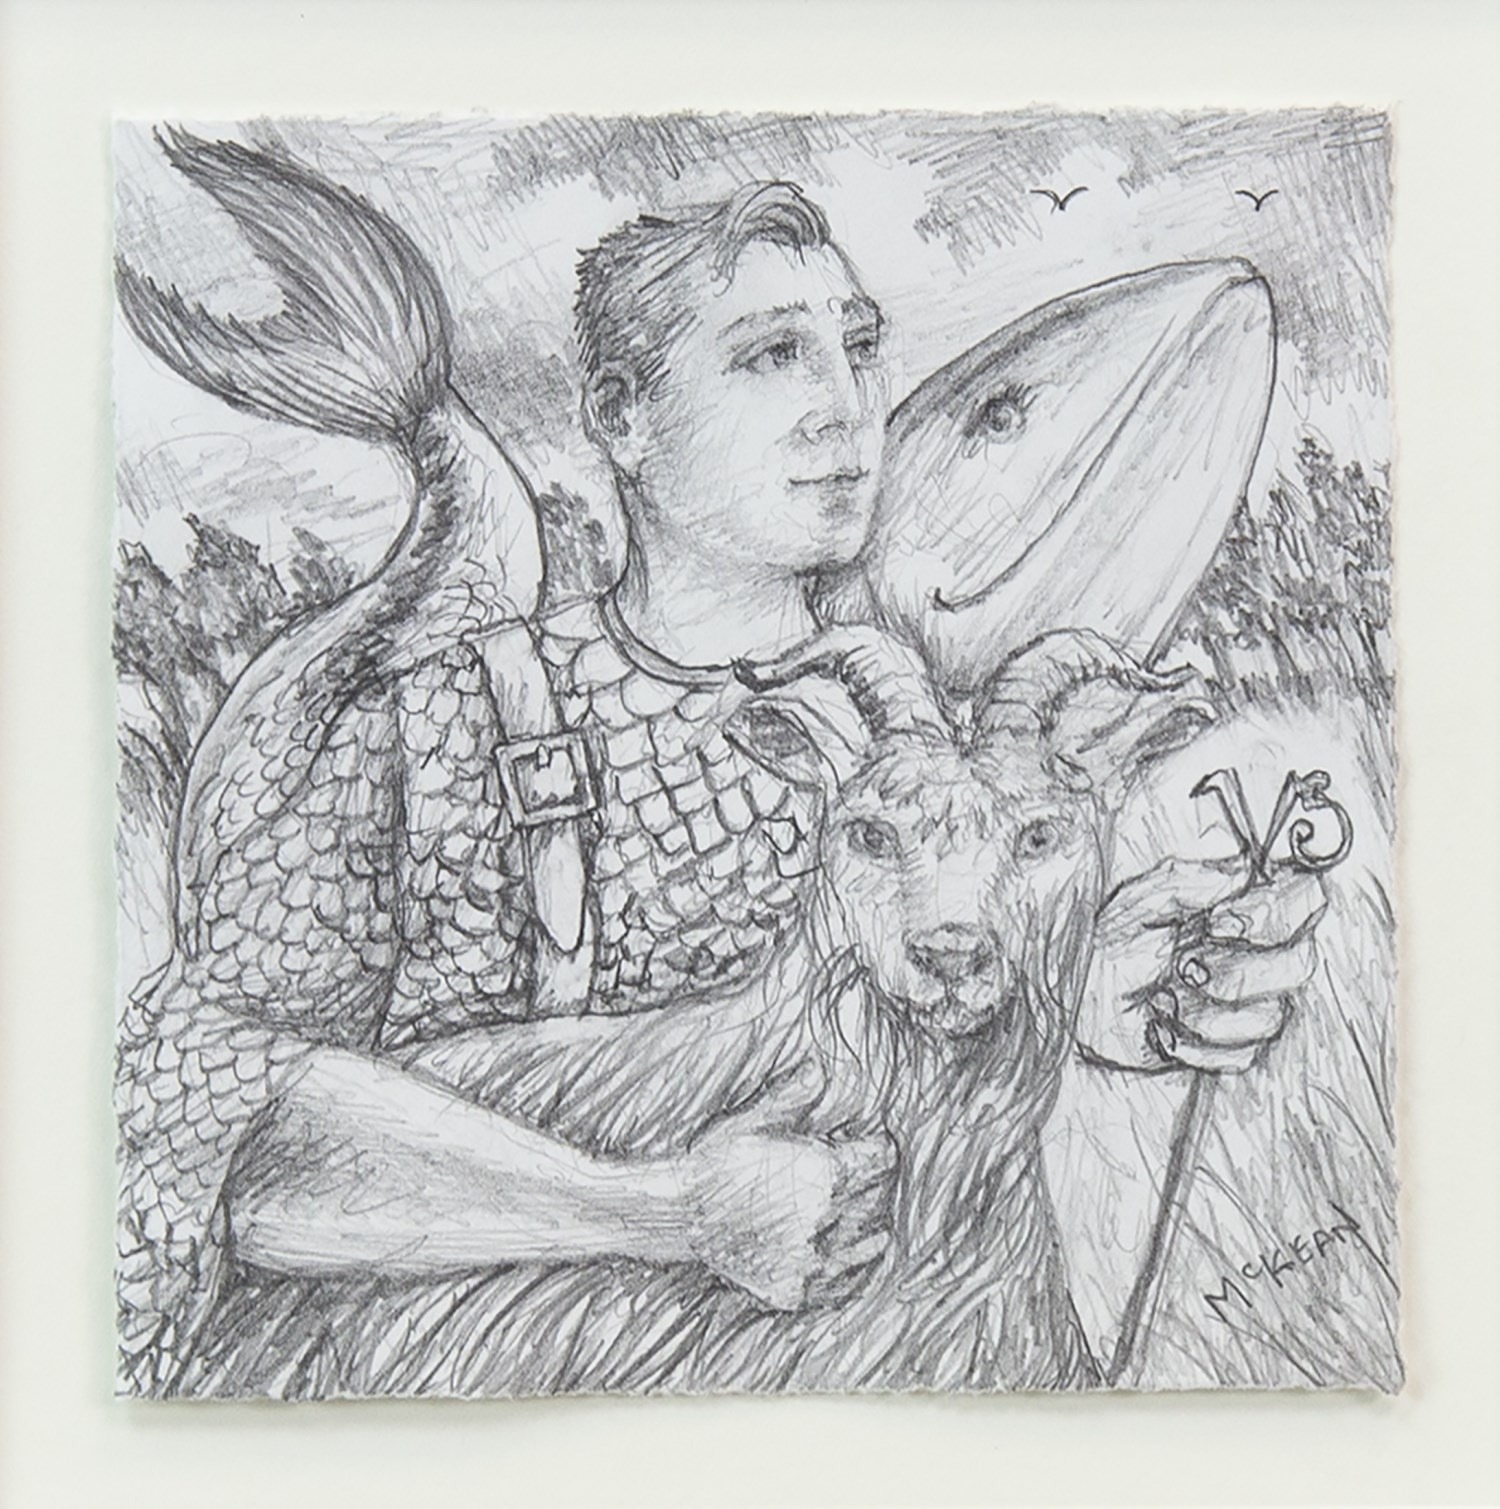 Lot 4 - PENCIL SKETCH OF MAN WITH GOAT AND WHALE, BY GRAHAM MCKEAN